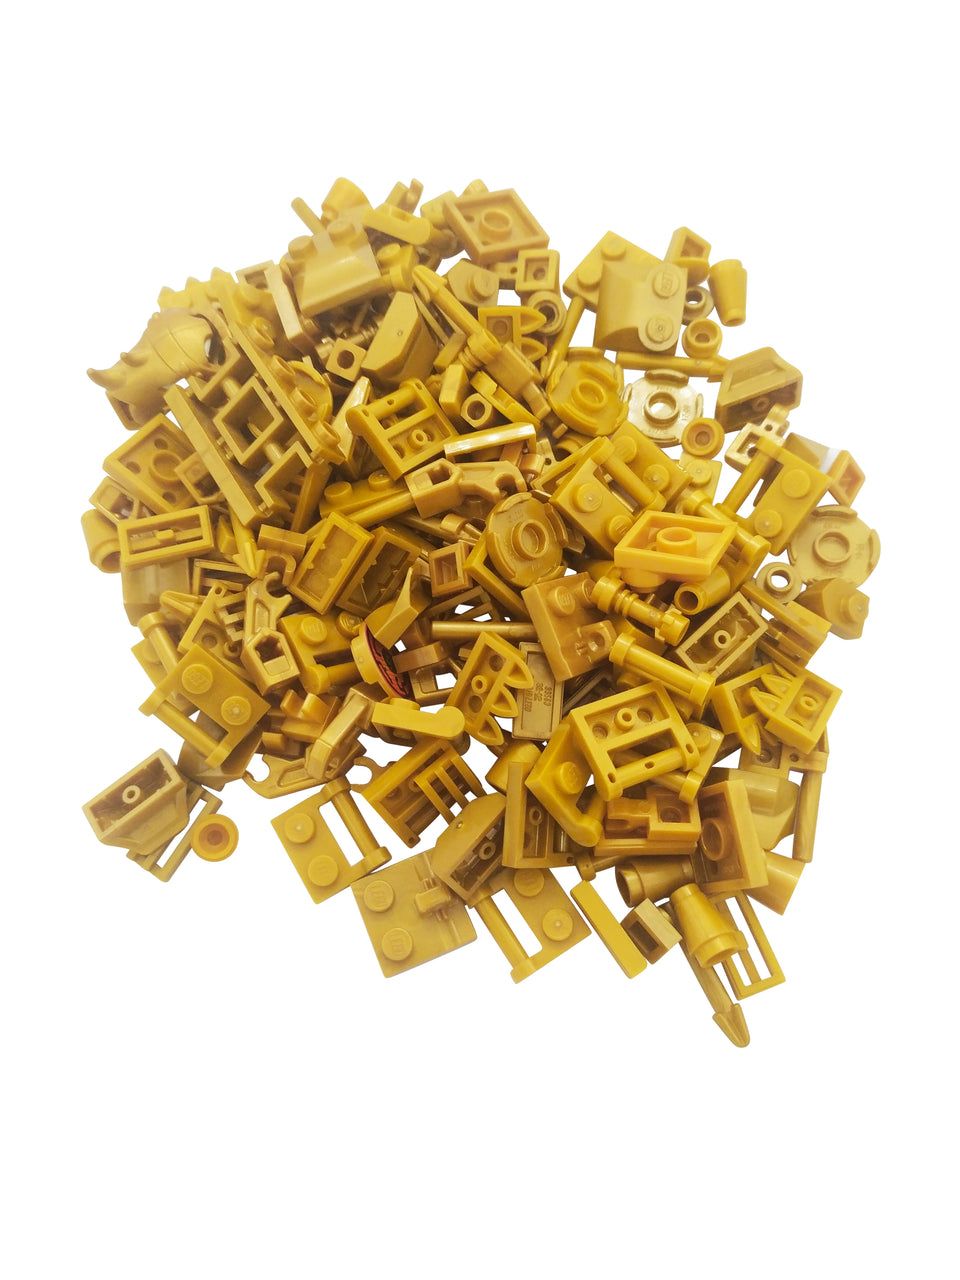 Special mix of Lego parts in gold color